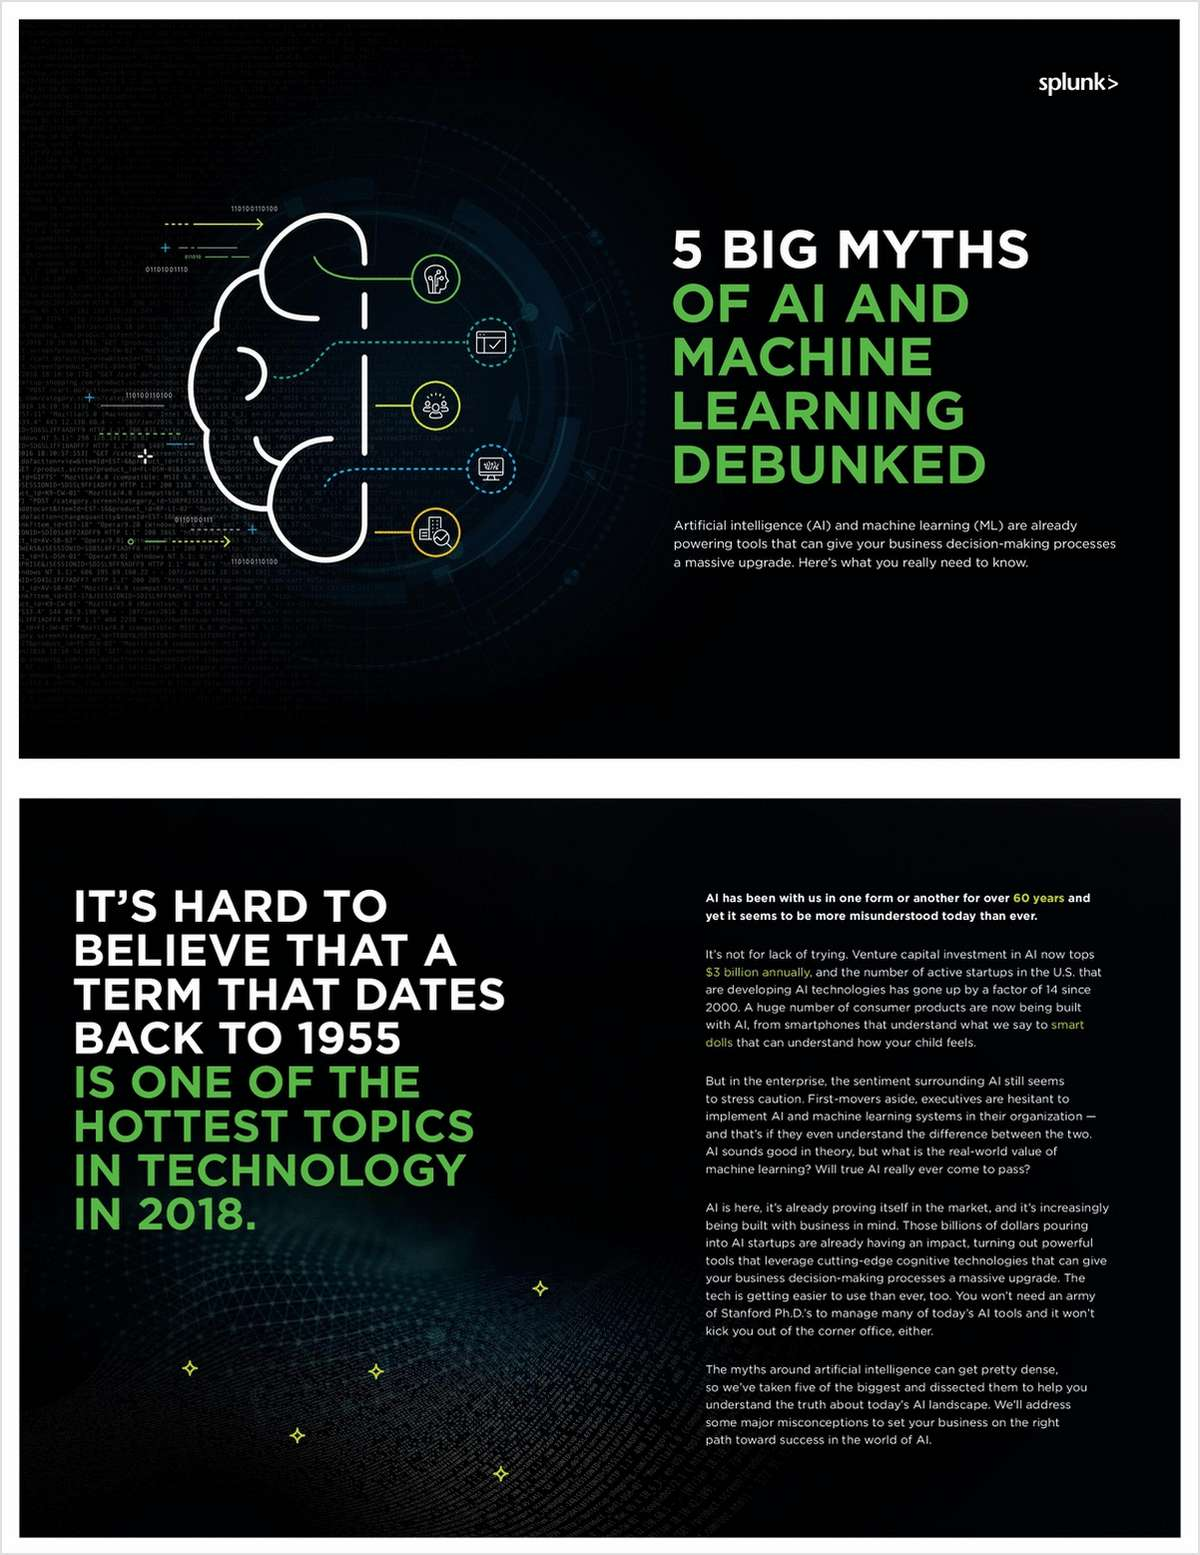 5 Big Myths of AI and Machine Learning Debunked